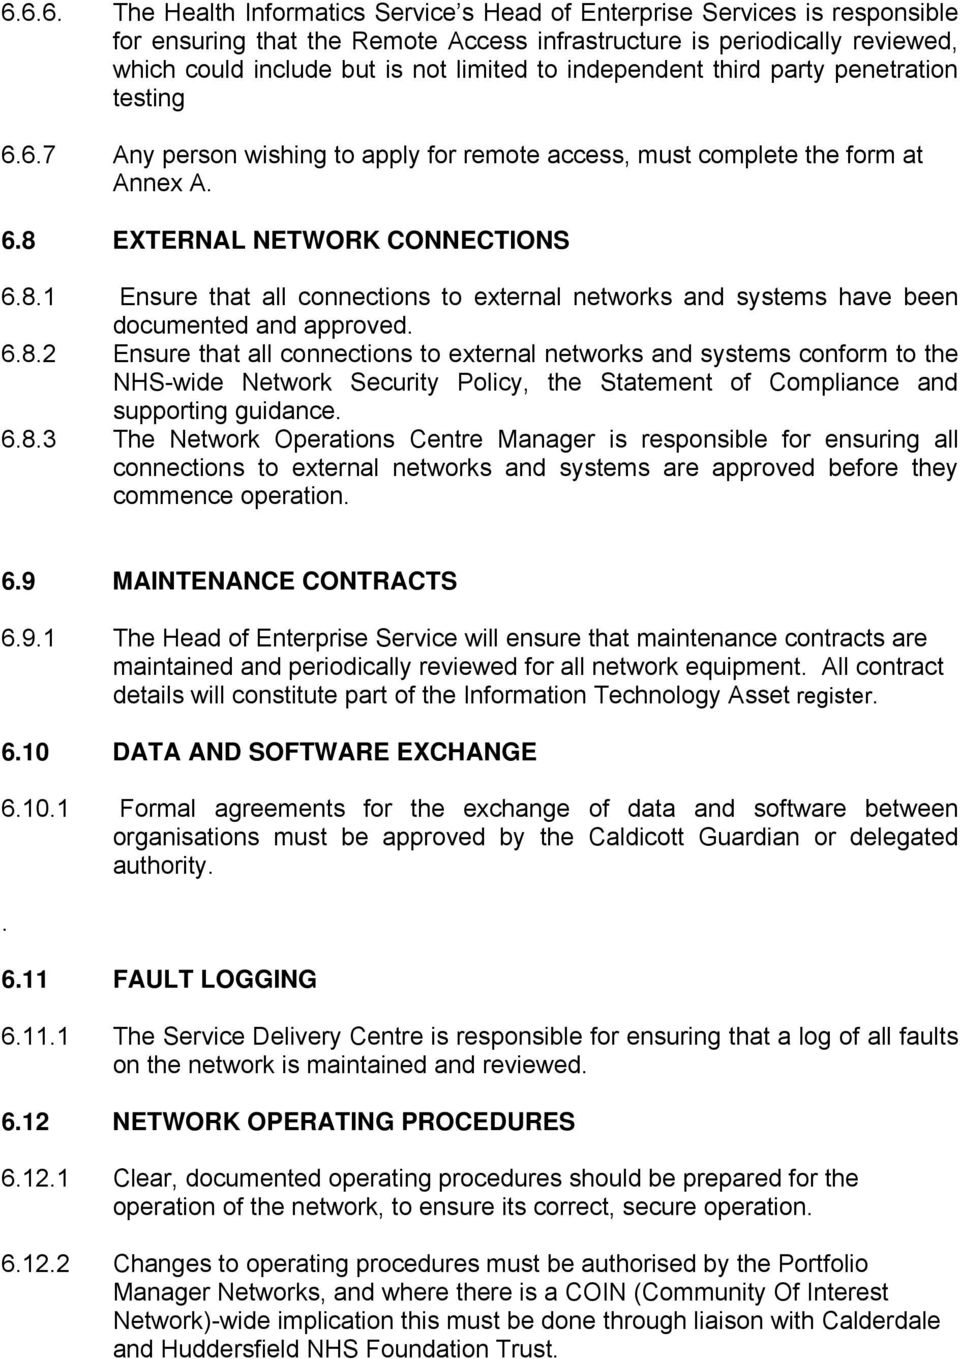 EXTERNAL NETWORK CONNECTIONS 6.8.1 Ensure that all connections to external networks and systems have been documented and approved. 6.8.2 Ensure that all connections to external networks and systems conform to the NHS-wide Network Security Policy, the Statement of Compliance and supporting guidance.